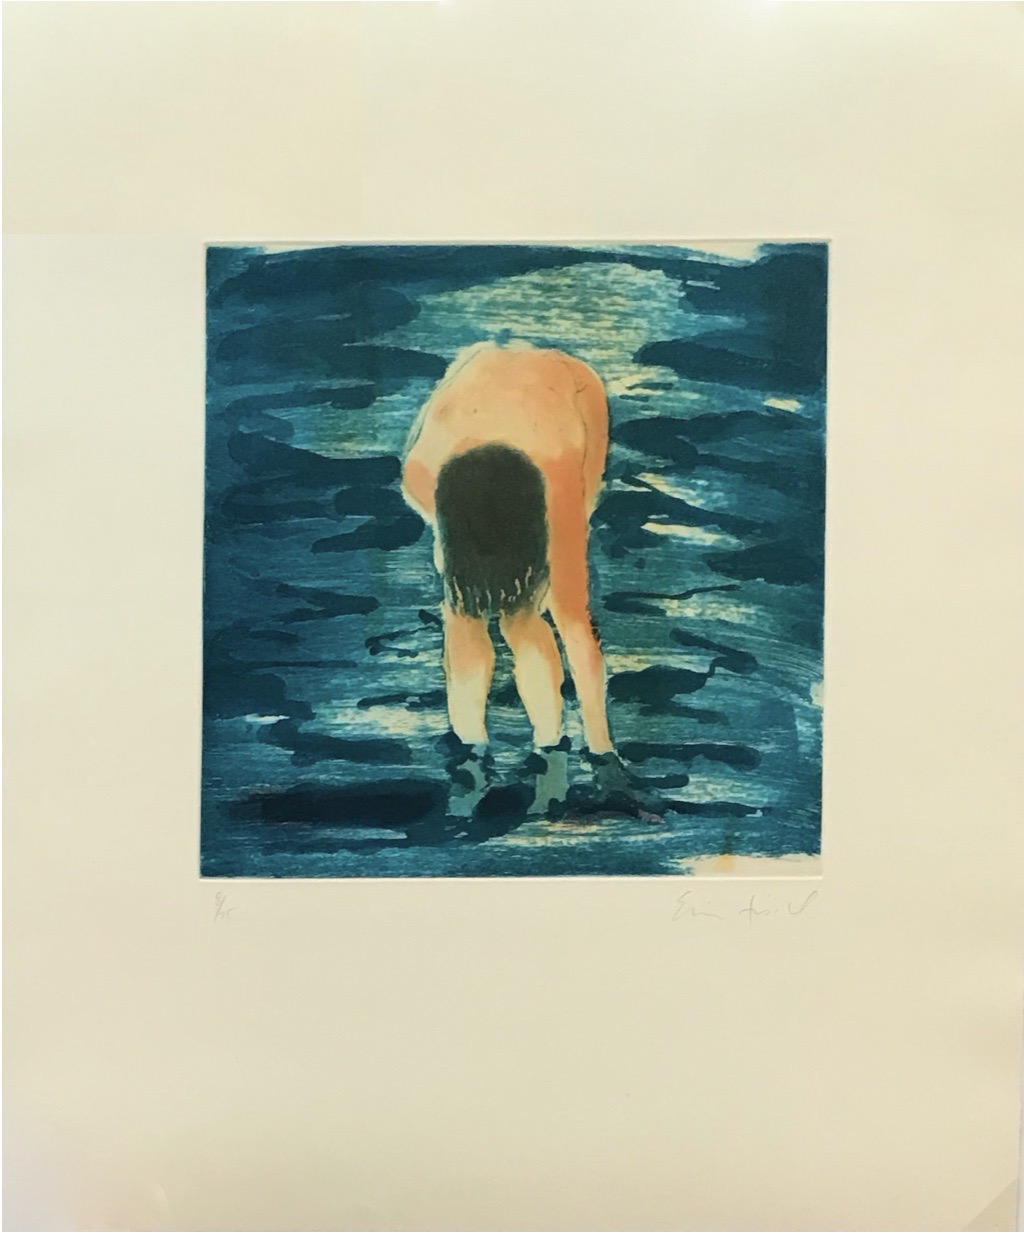 Untitled (Boy in blue water) by Eric Fischl